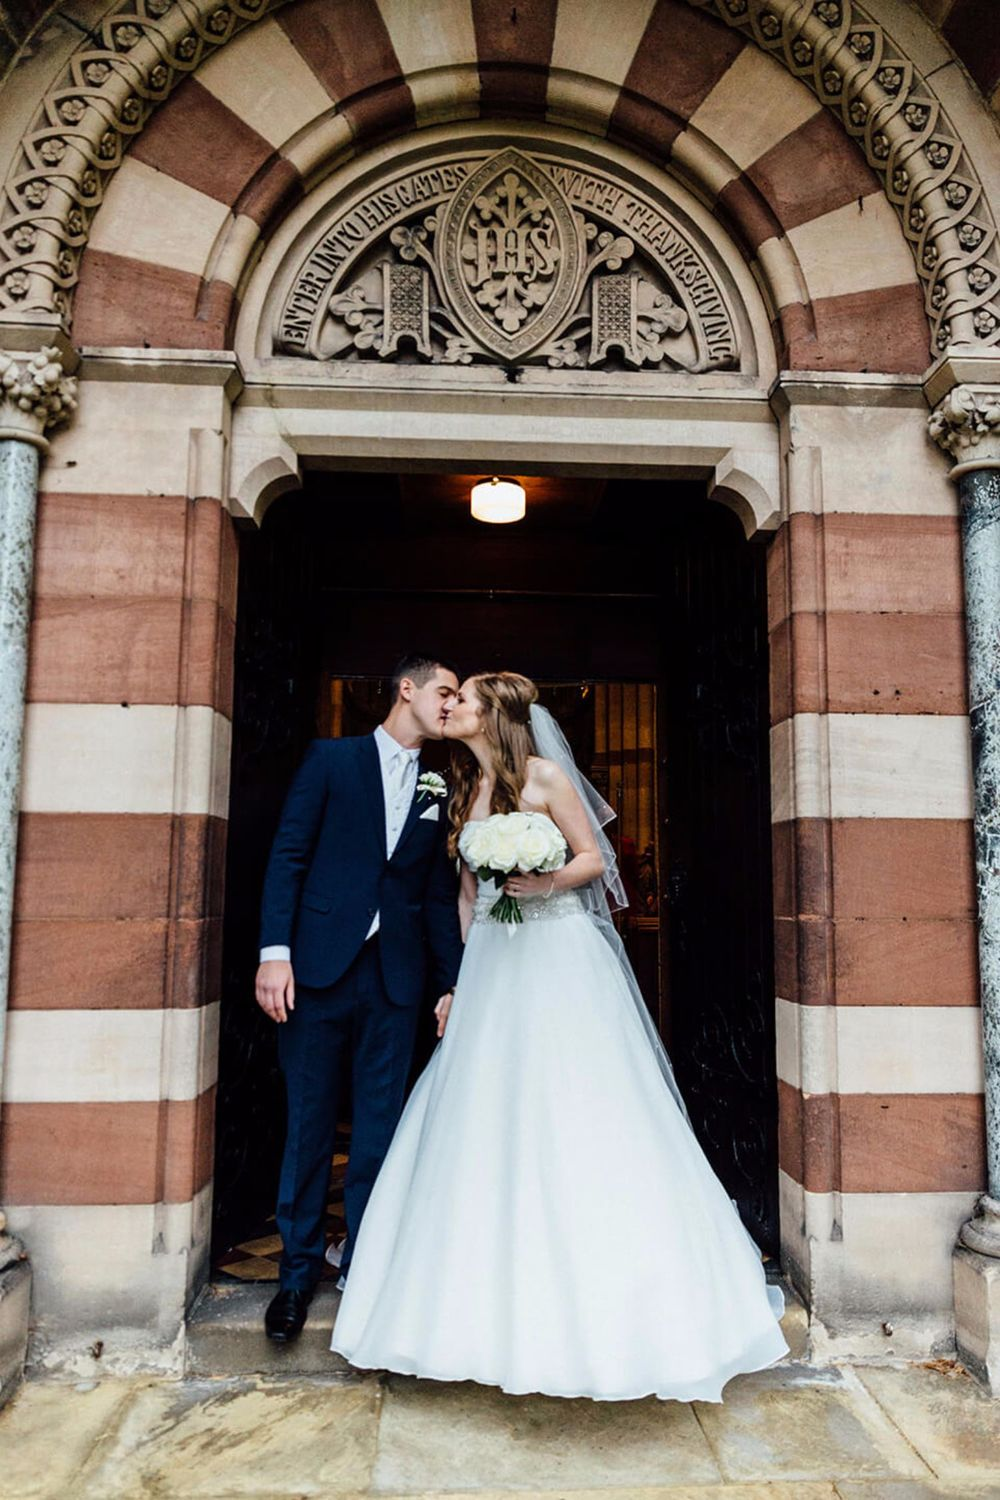 ELLESMERE PORT WEDDING PHOTOGRAPHER STEPHEN MCGOWAN 166.jpg